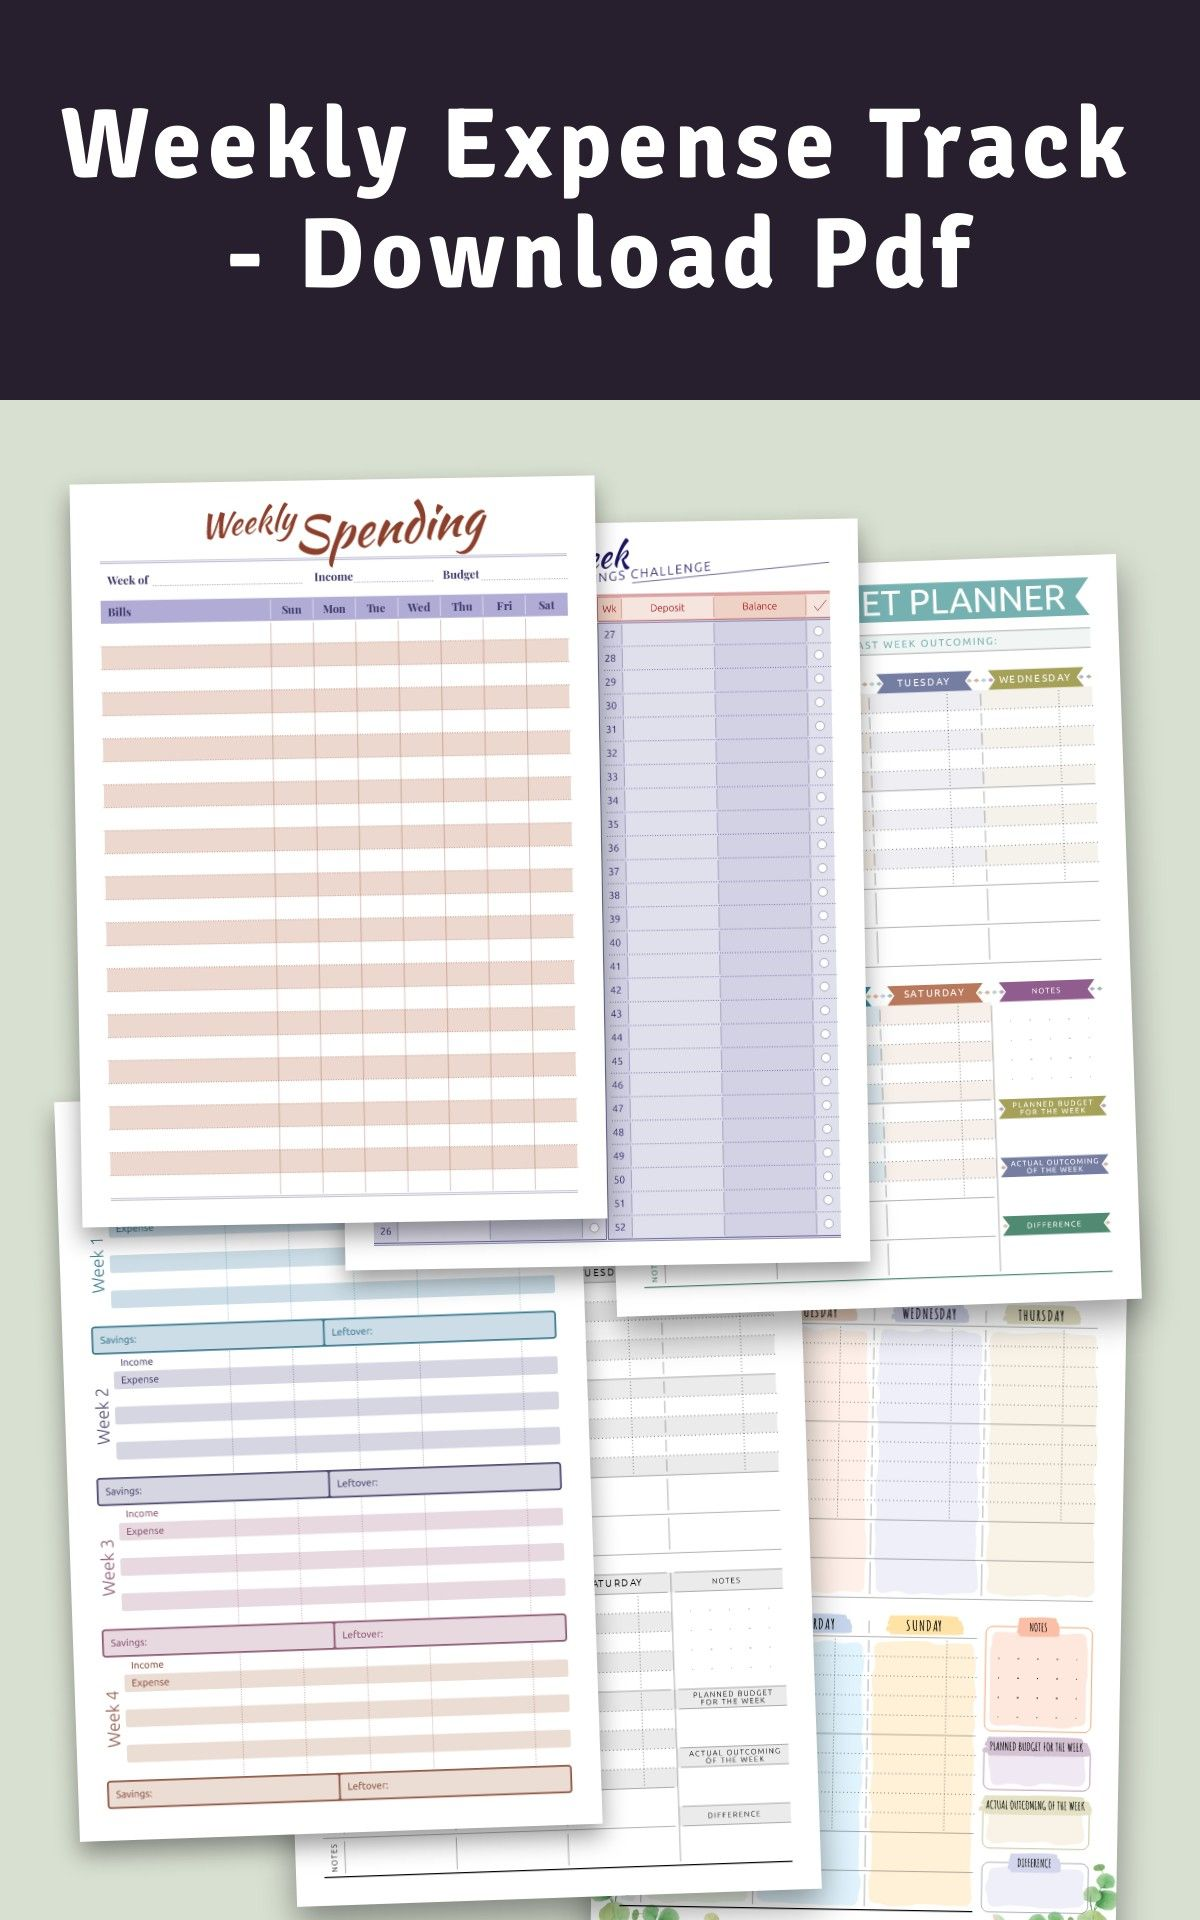 Weekly Expense Track Download Pdf in 2020 Weekly